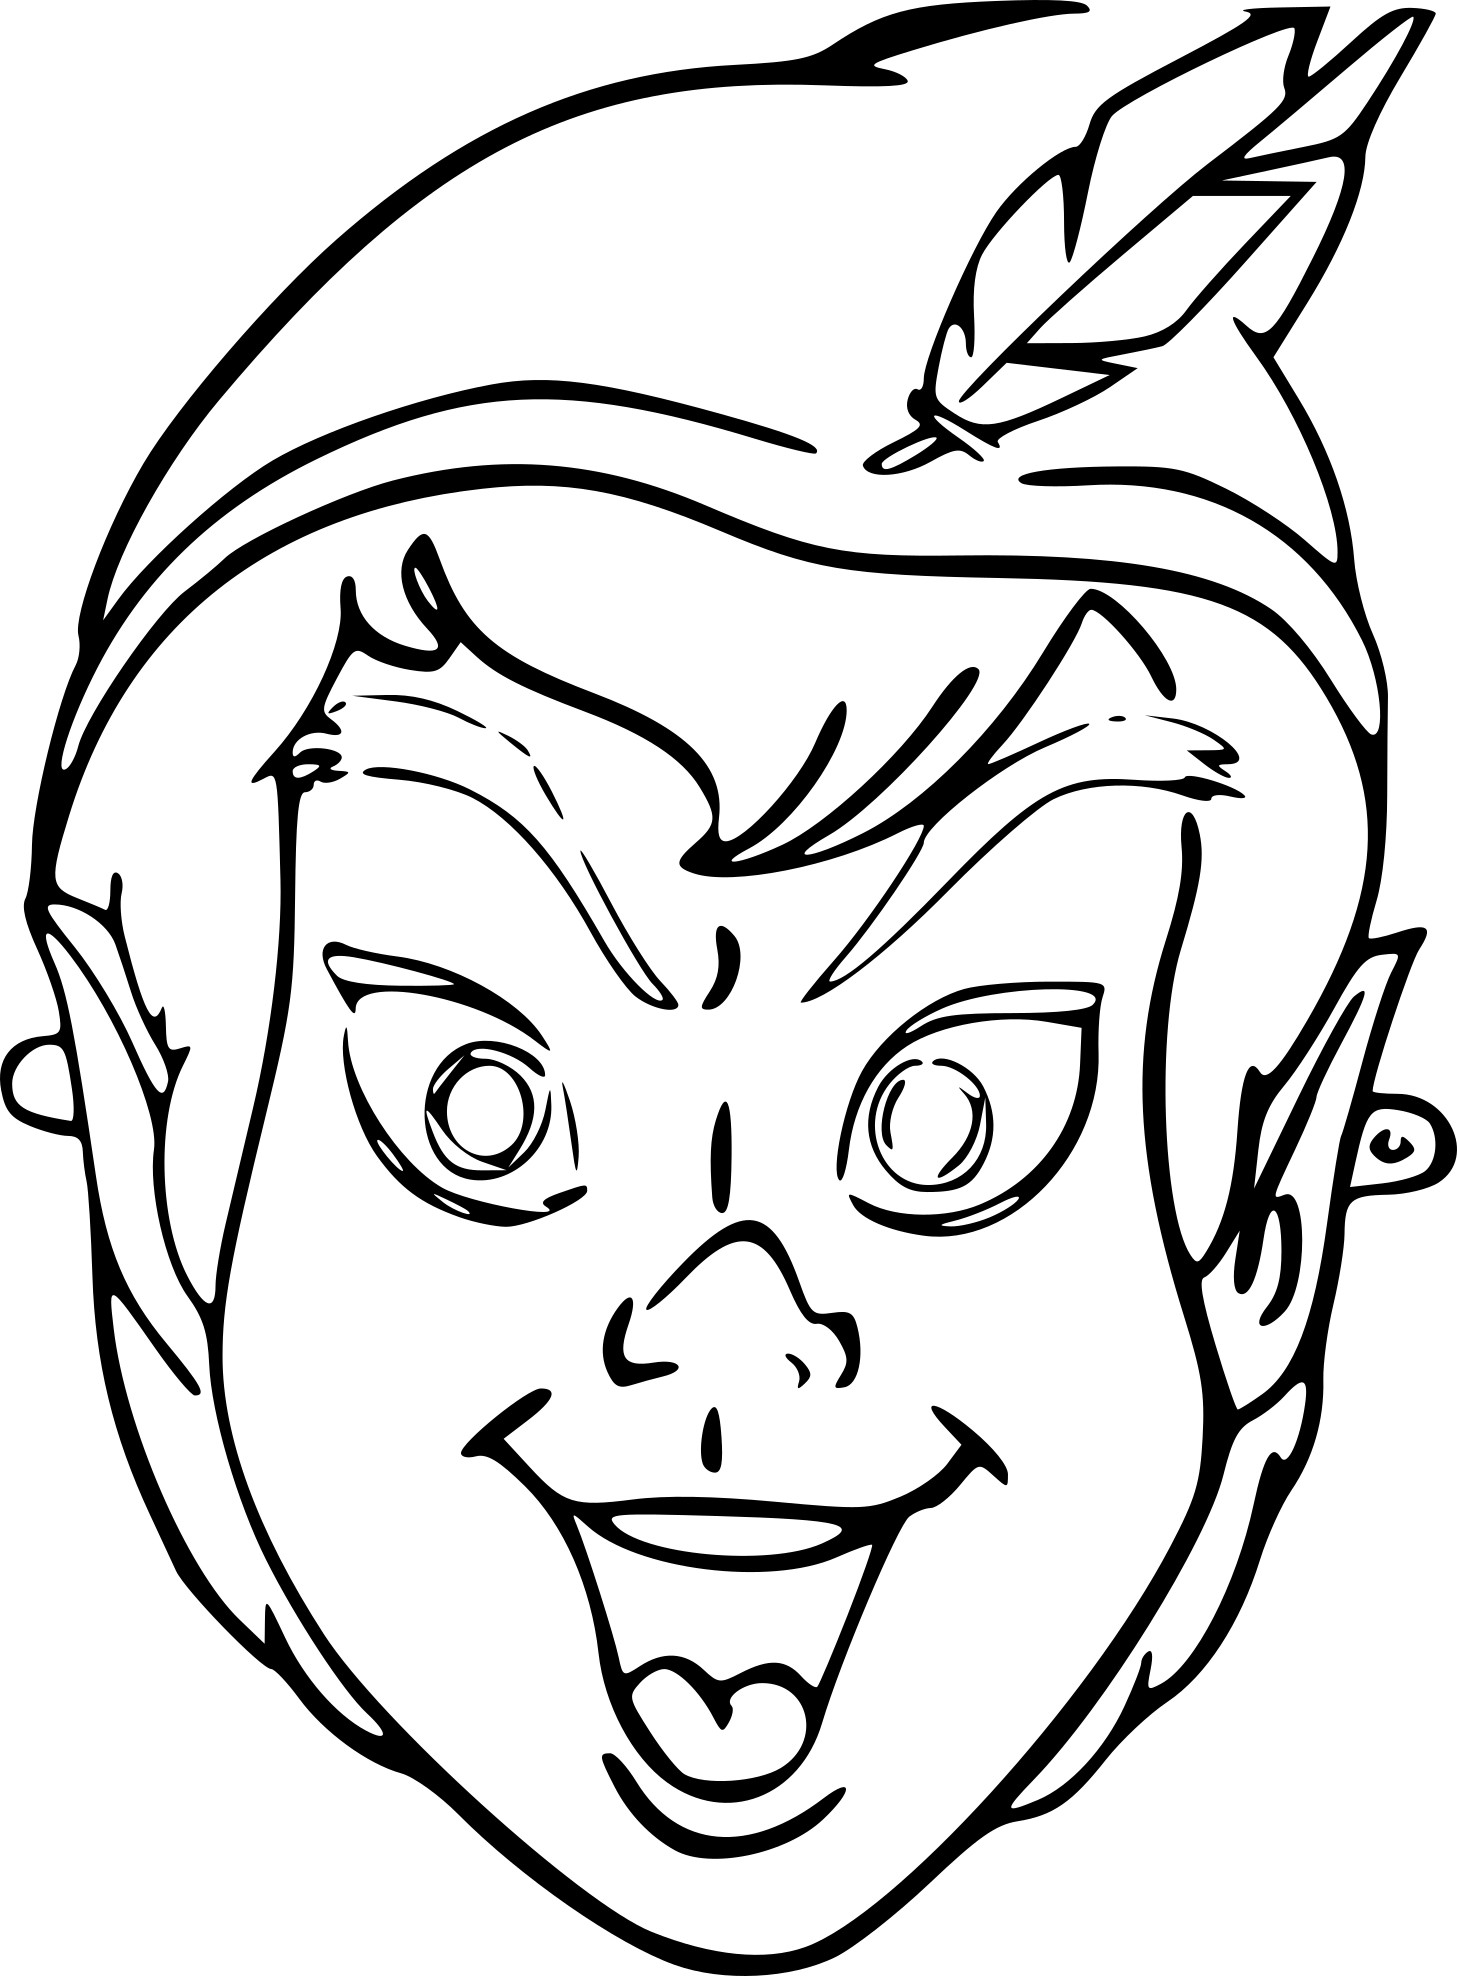 Coloriage masque peter pan imprimer - Masque de princesse a colorier ...